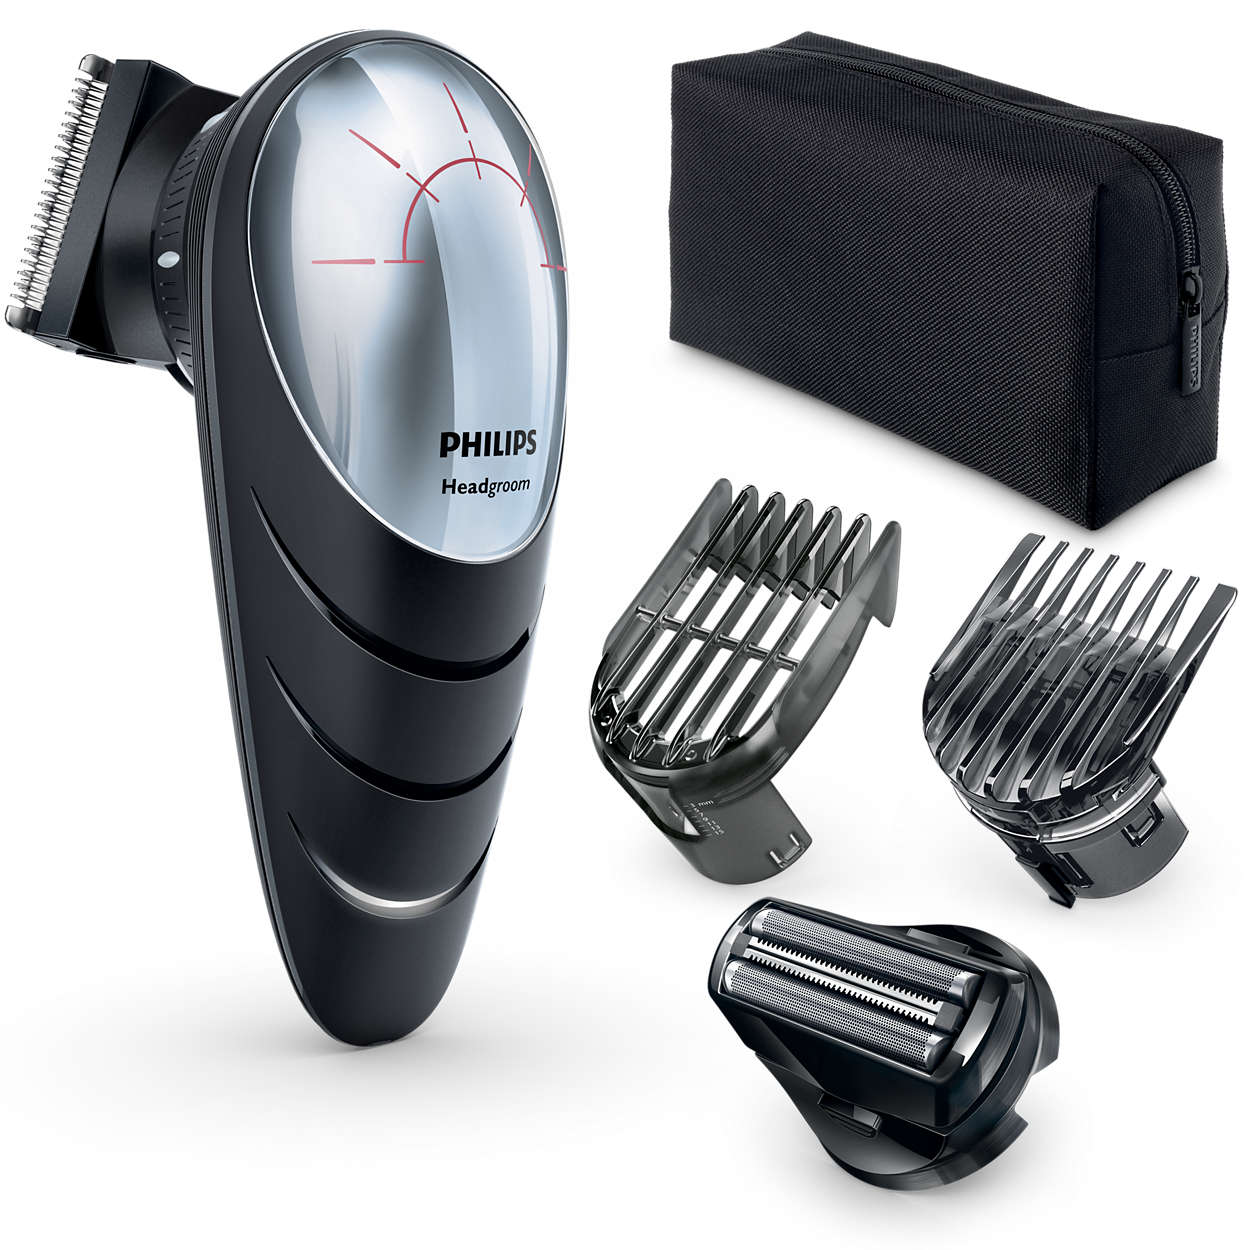 Do it yourself hair clipper qc558032 philips shave your own head even in hard to reach areas solutioingenieria Gallery